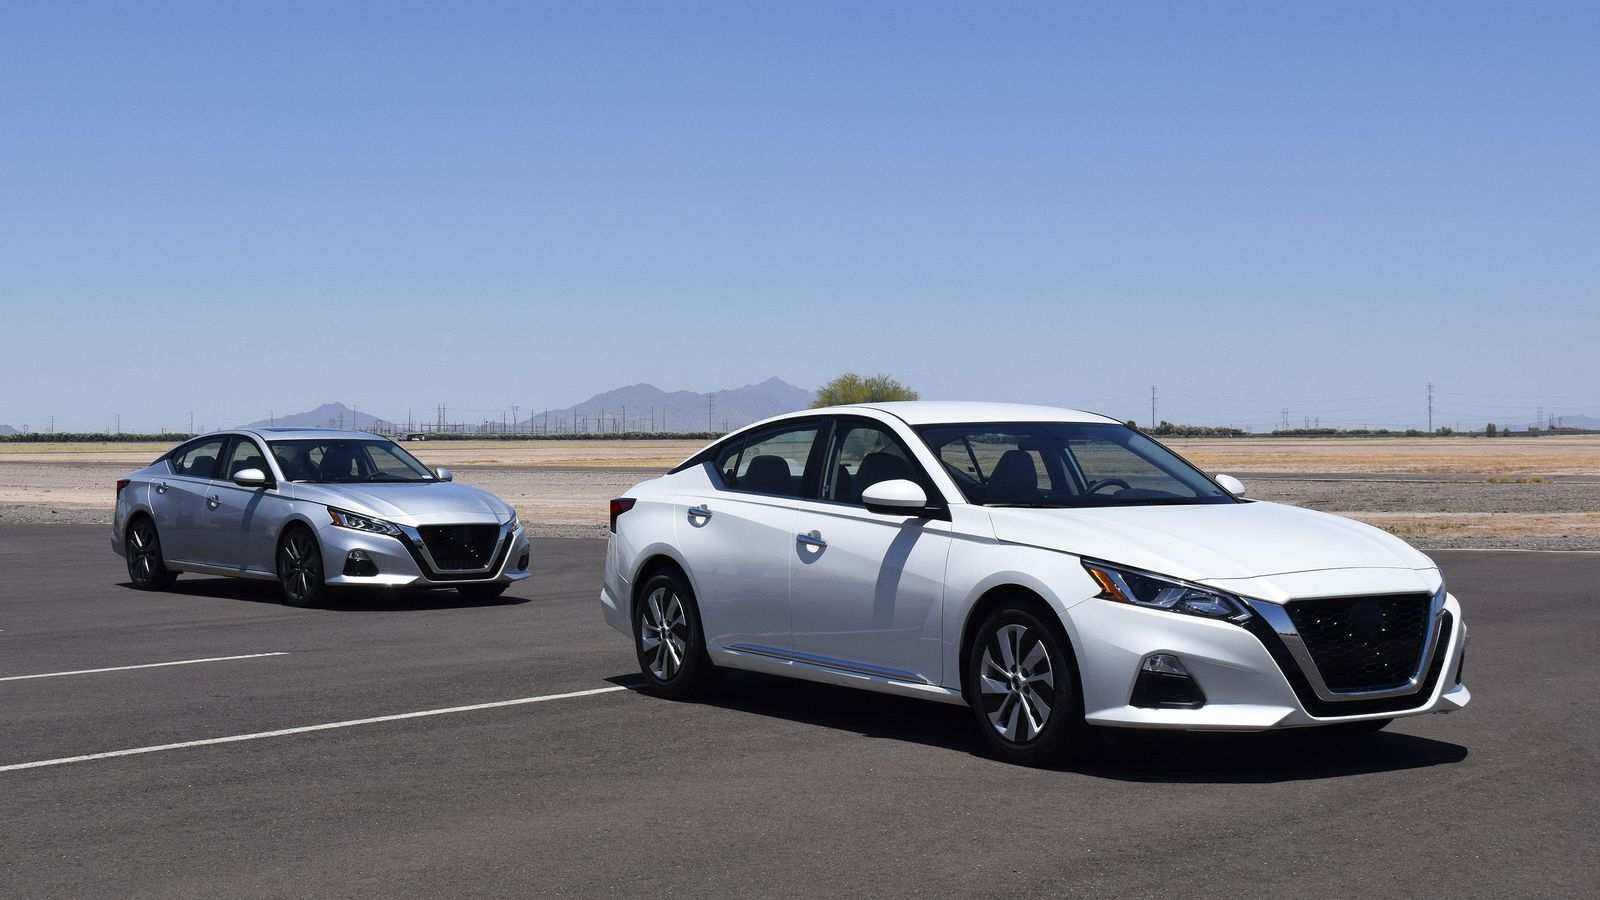 25 All New New Nissan 2019 Specs First Drive Research New for New Nissan 2019 Specs First Drive